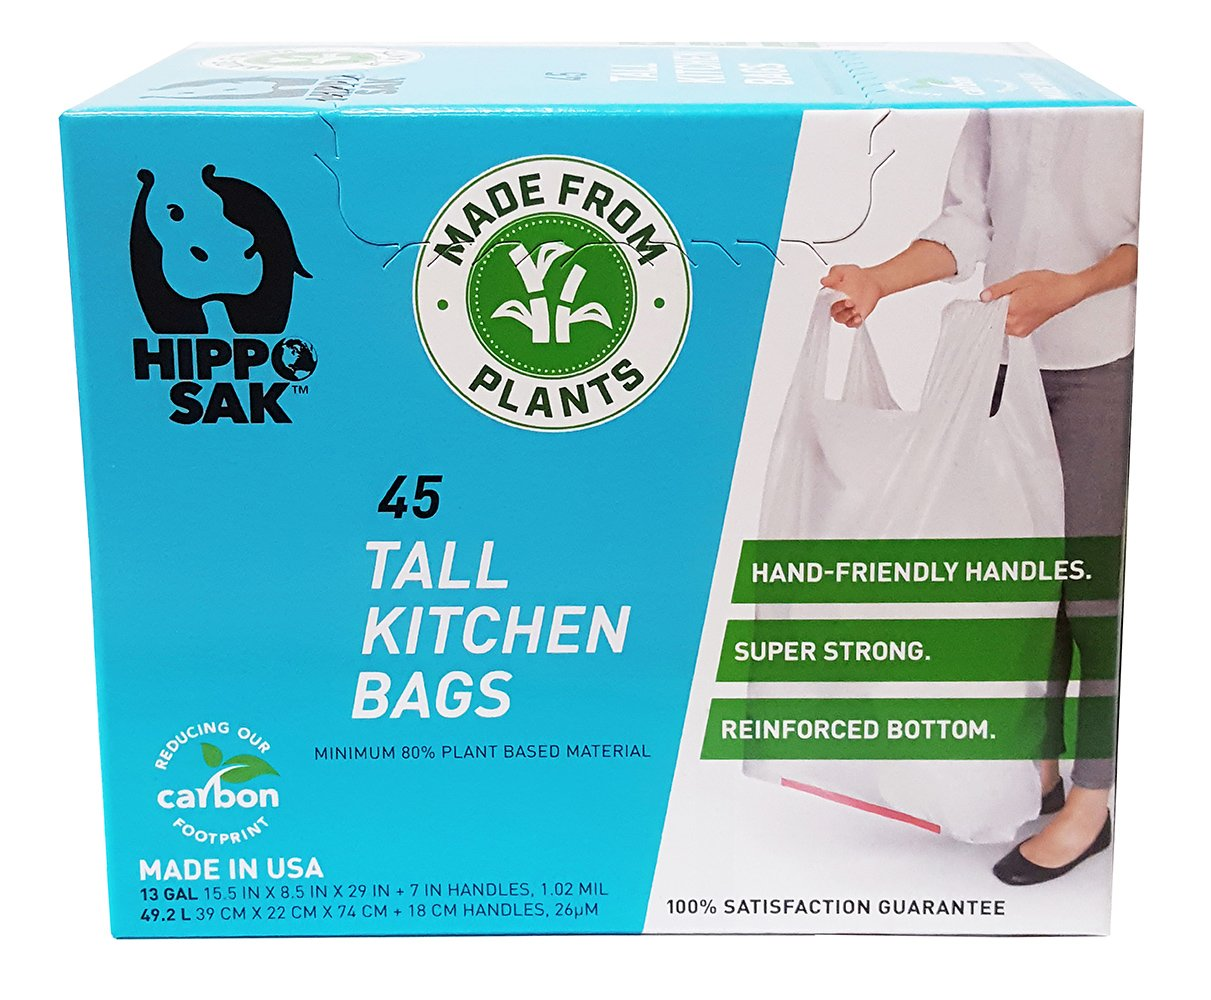 Plant Based - Hippo Sak Tall Kitchen Bags with Handles, 13 Gallon (45 Count) by Hippo Sak